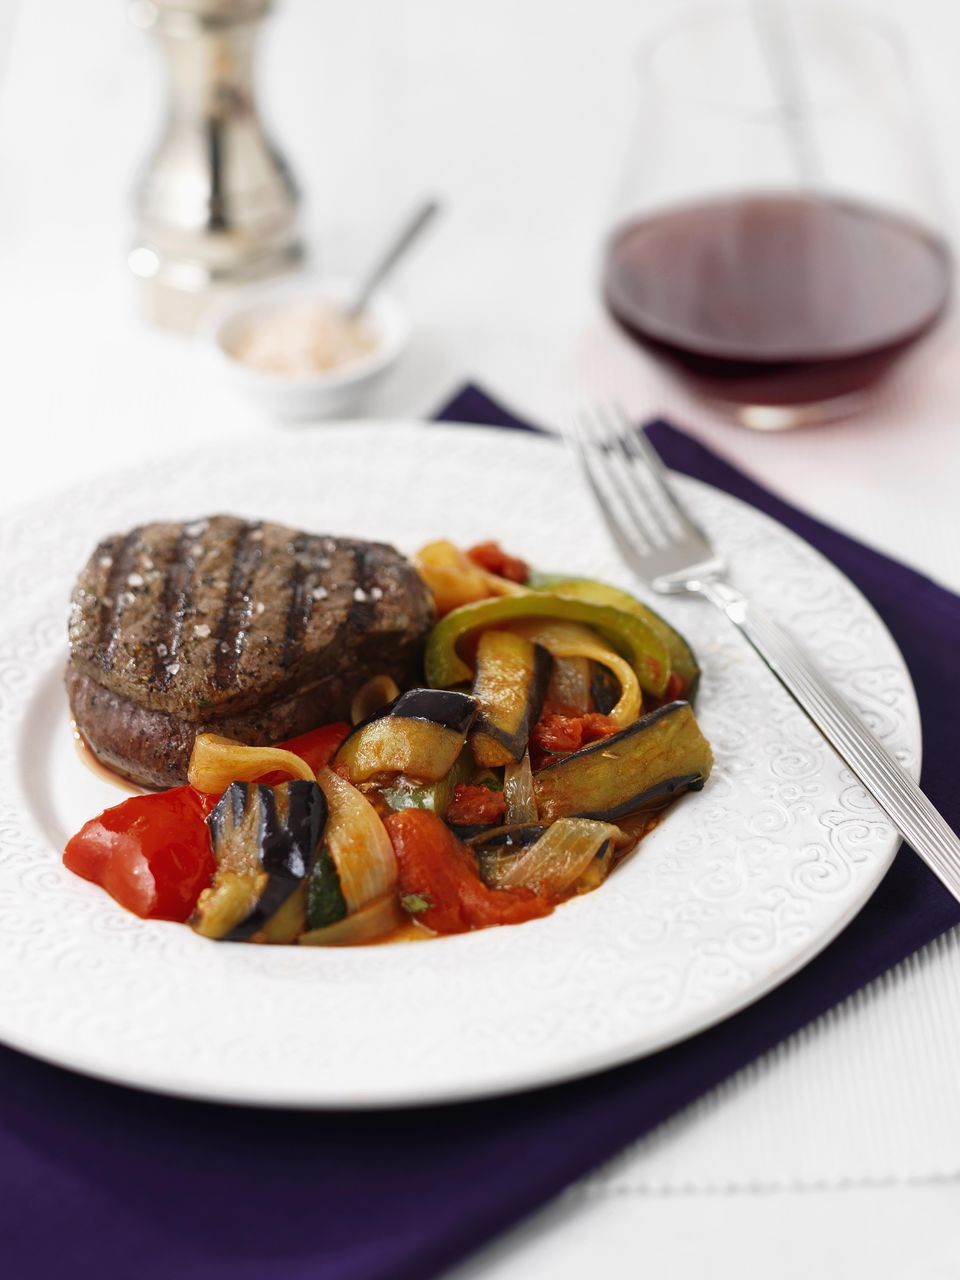 Grilled ratatouille with steak